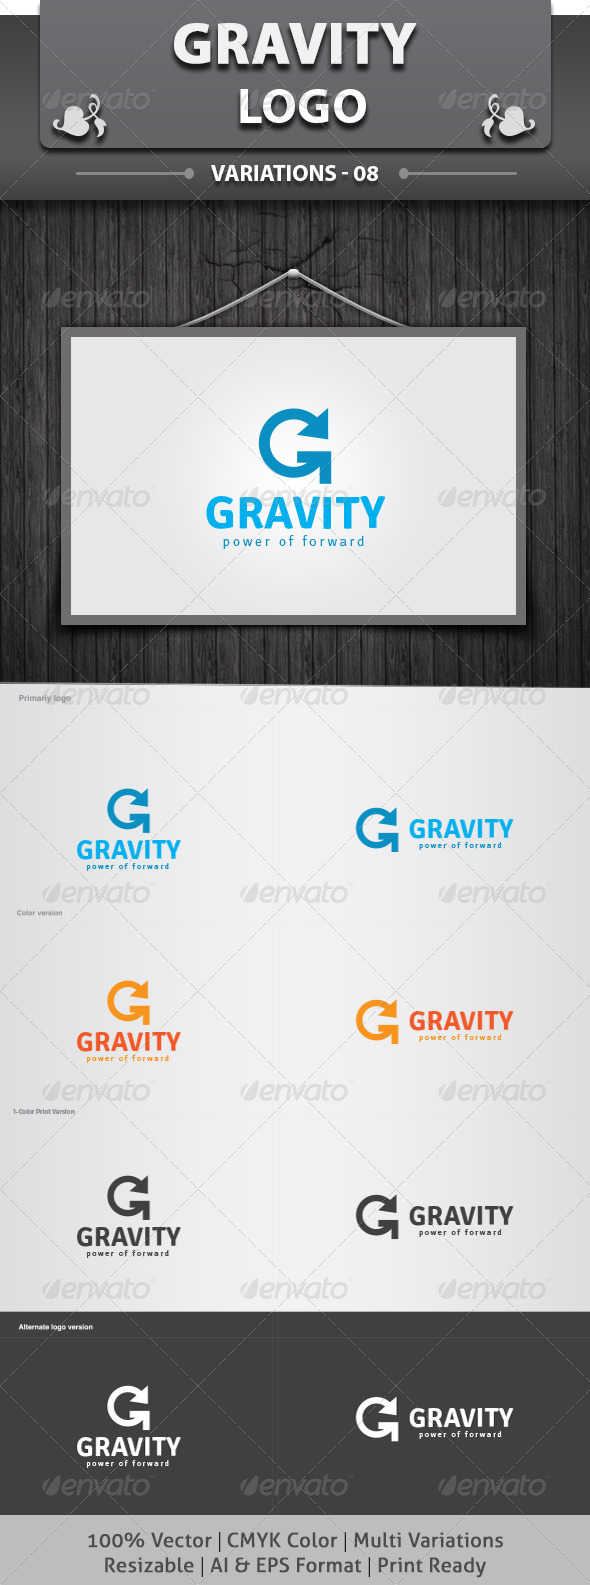 Gravity powerpoint template torrent for Powerpoint templates torrents